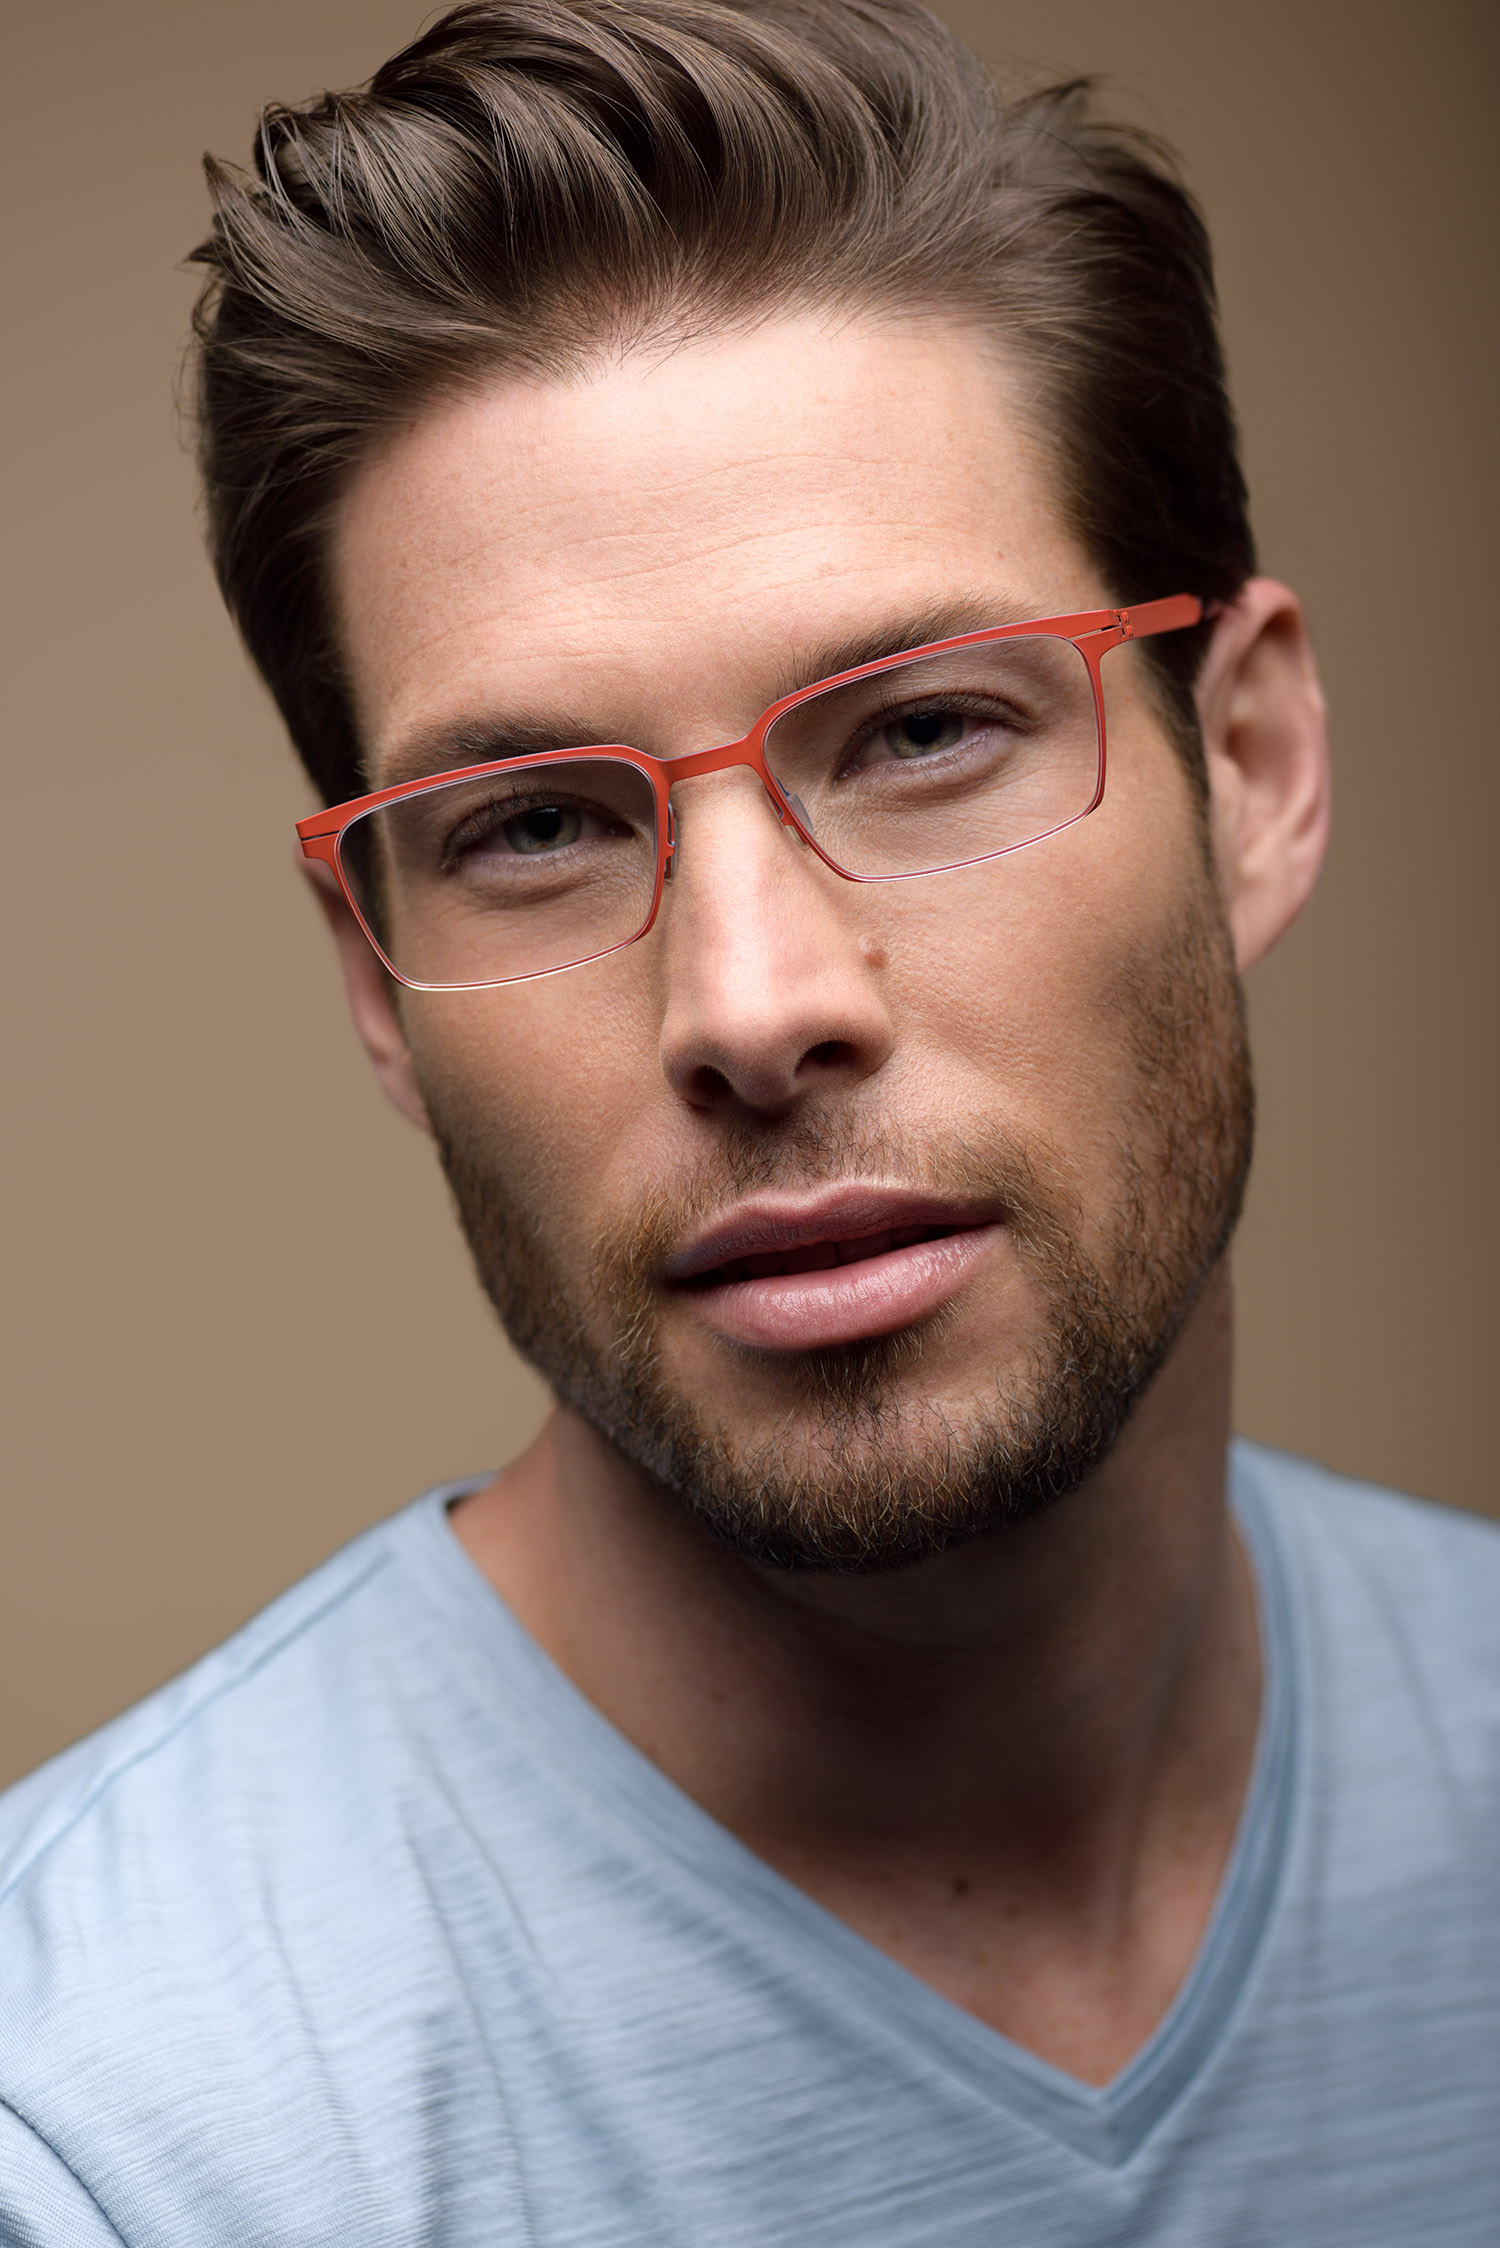 chadd-smith-glasses-copyright-melis-dainon.jpg